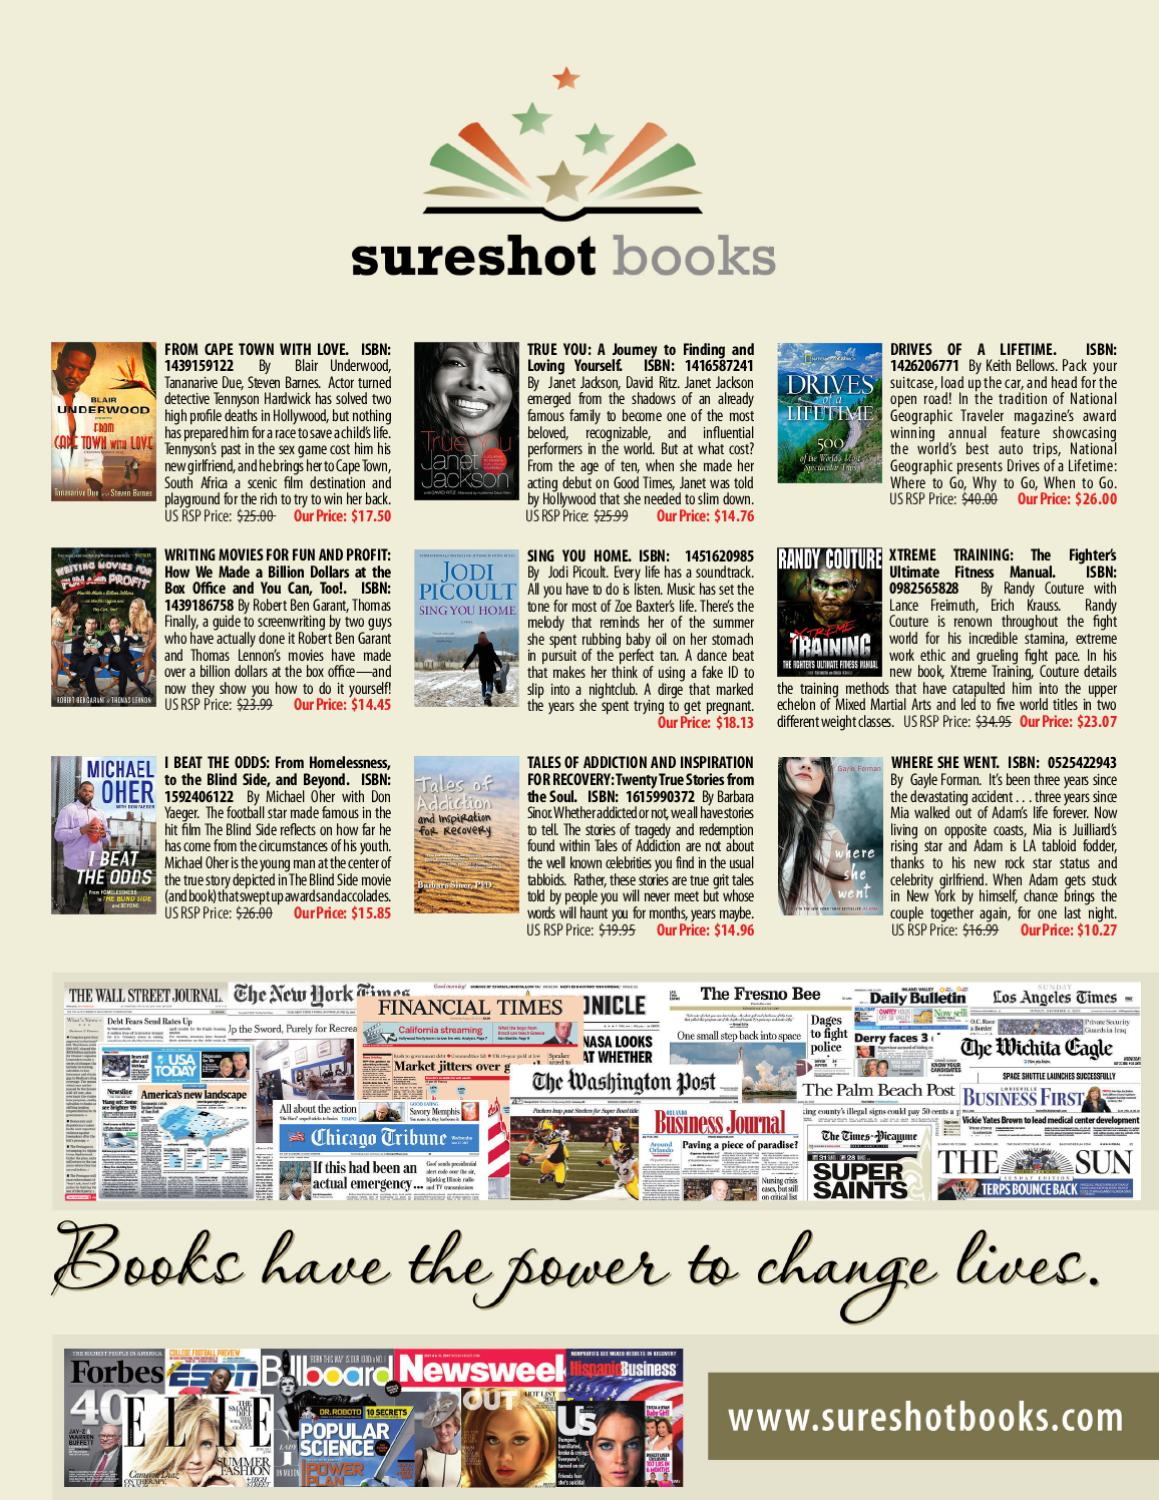 Httpsureshotbooks by sureshot books issuu fandeluxe Choice Image